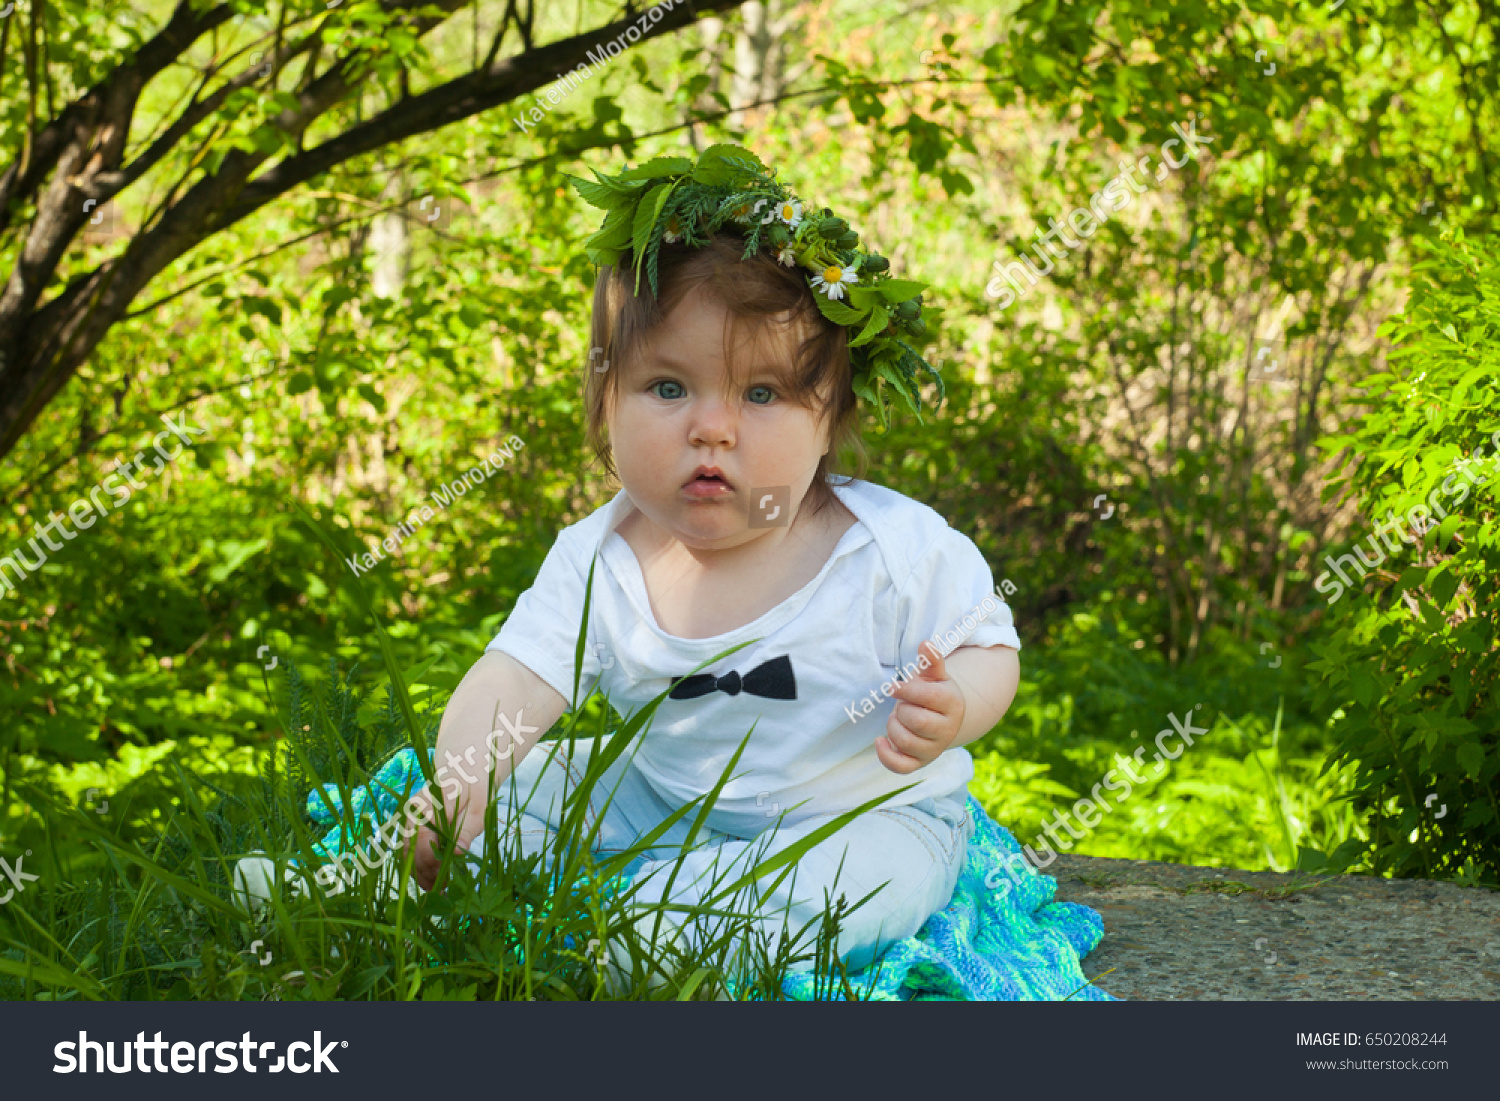 cute adorable nice baby girl or boy sitting in spring or summer park